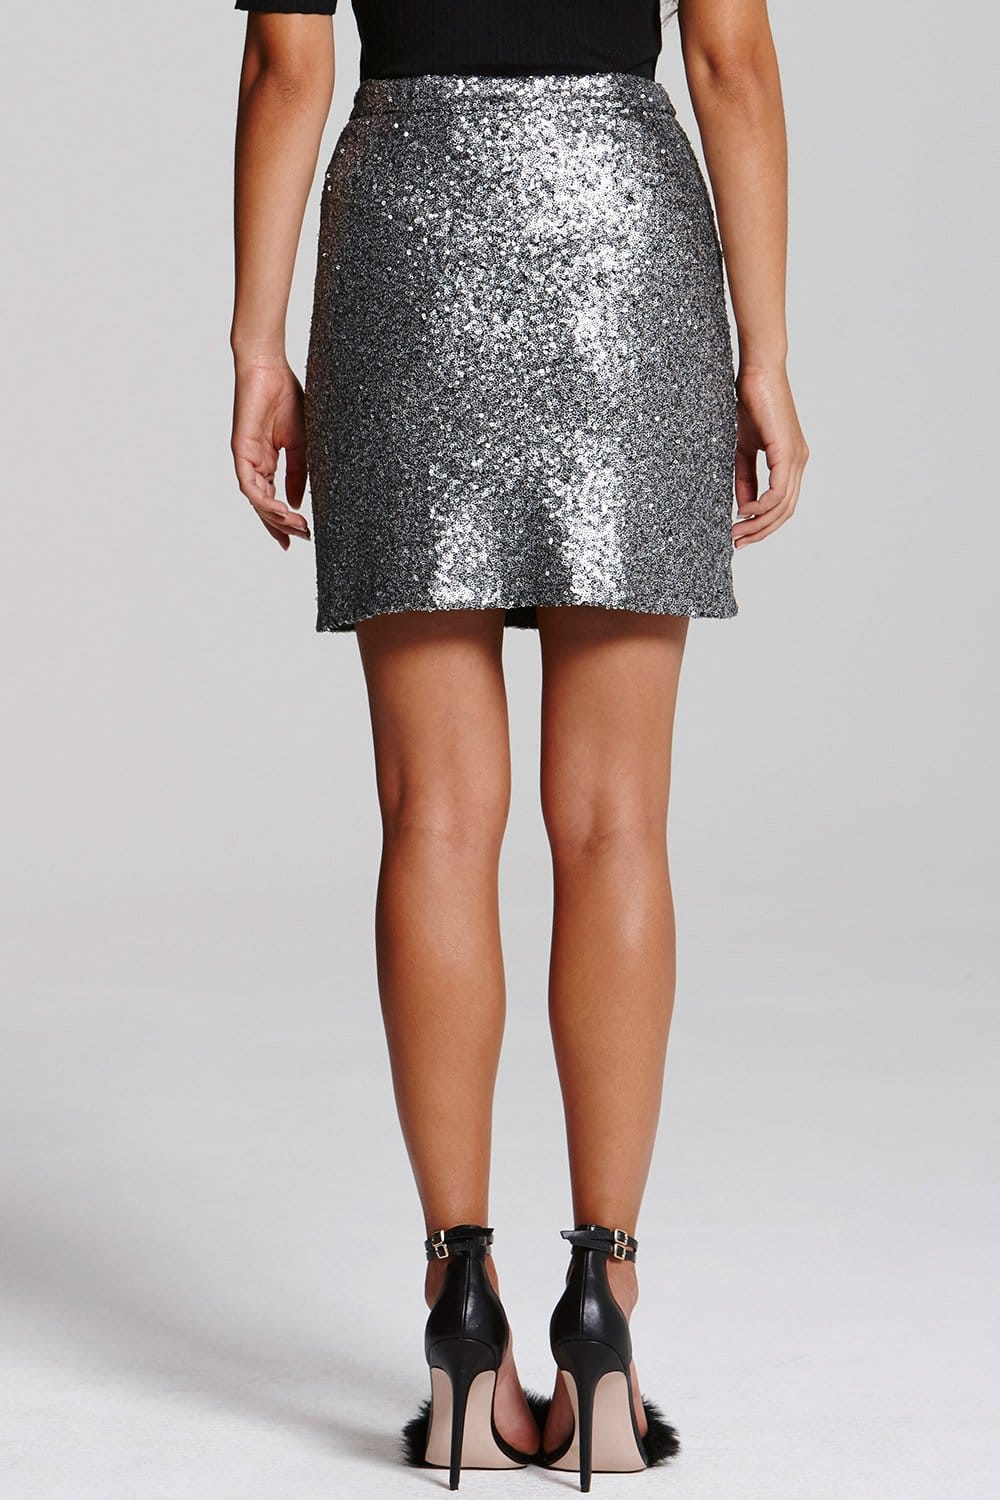 Outlet Girls On Film Silver Sequin Mini Skirt - Outlet Girls On ...